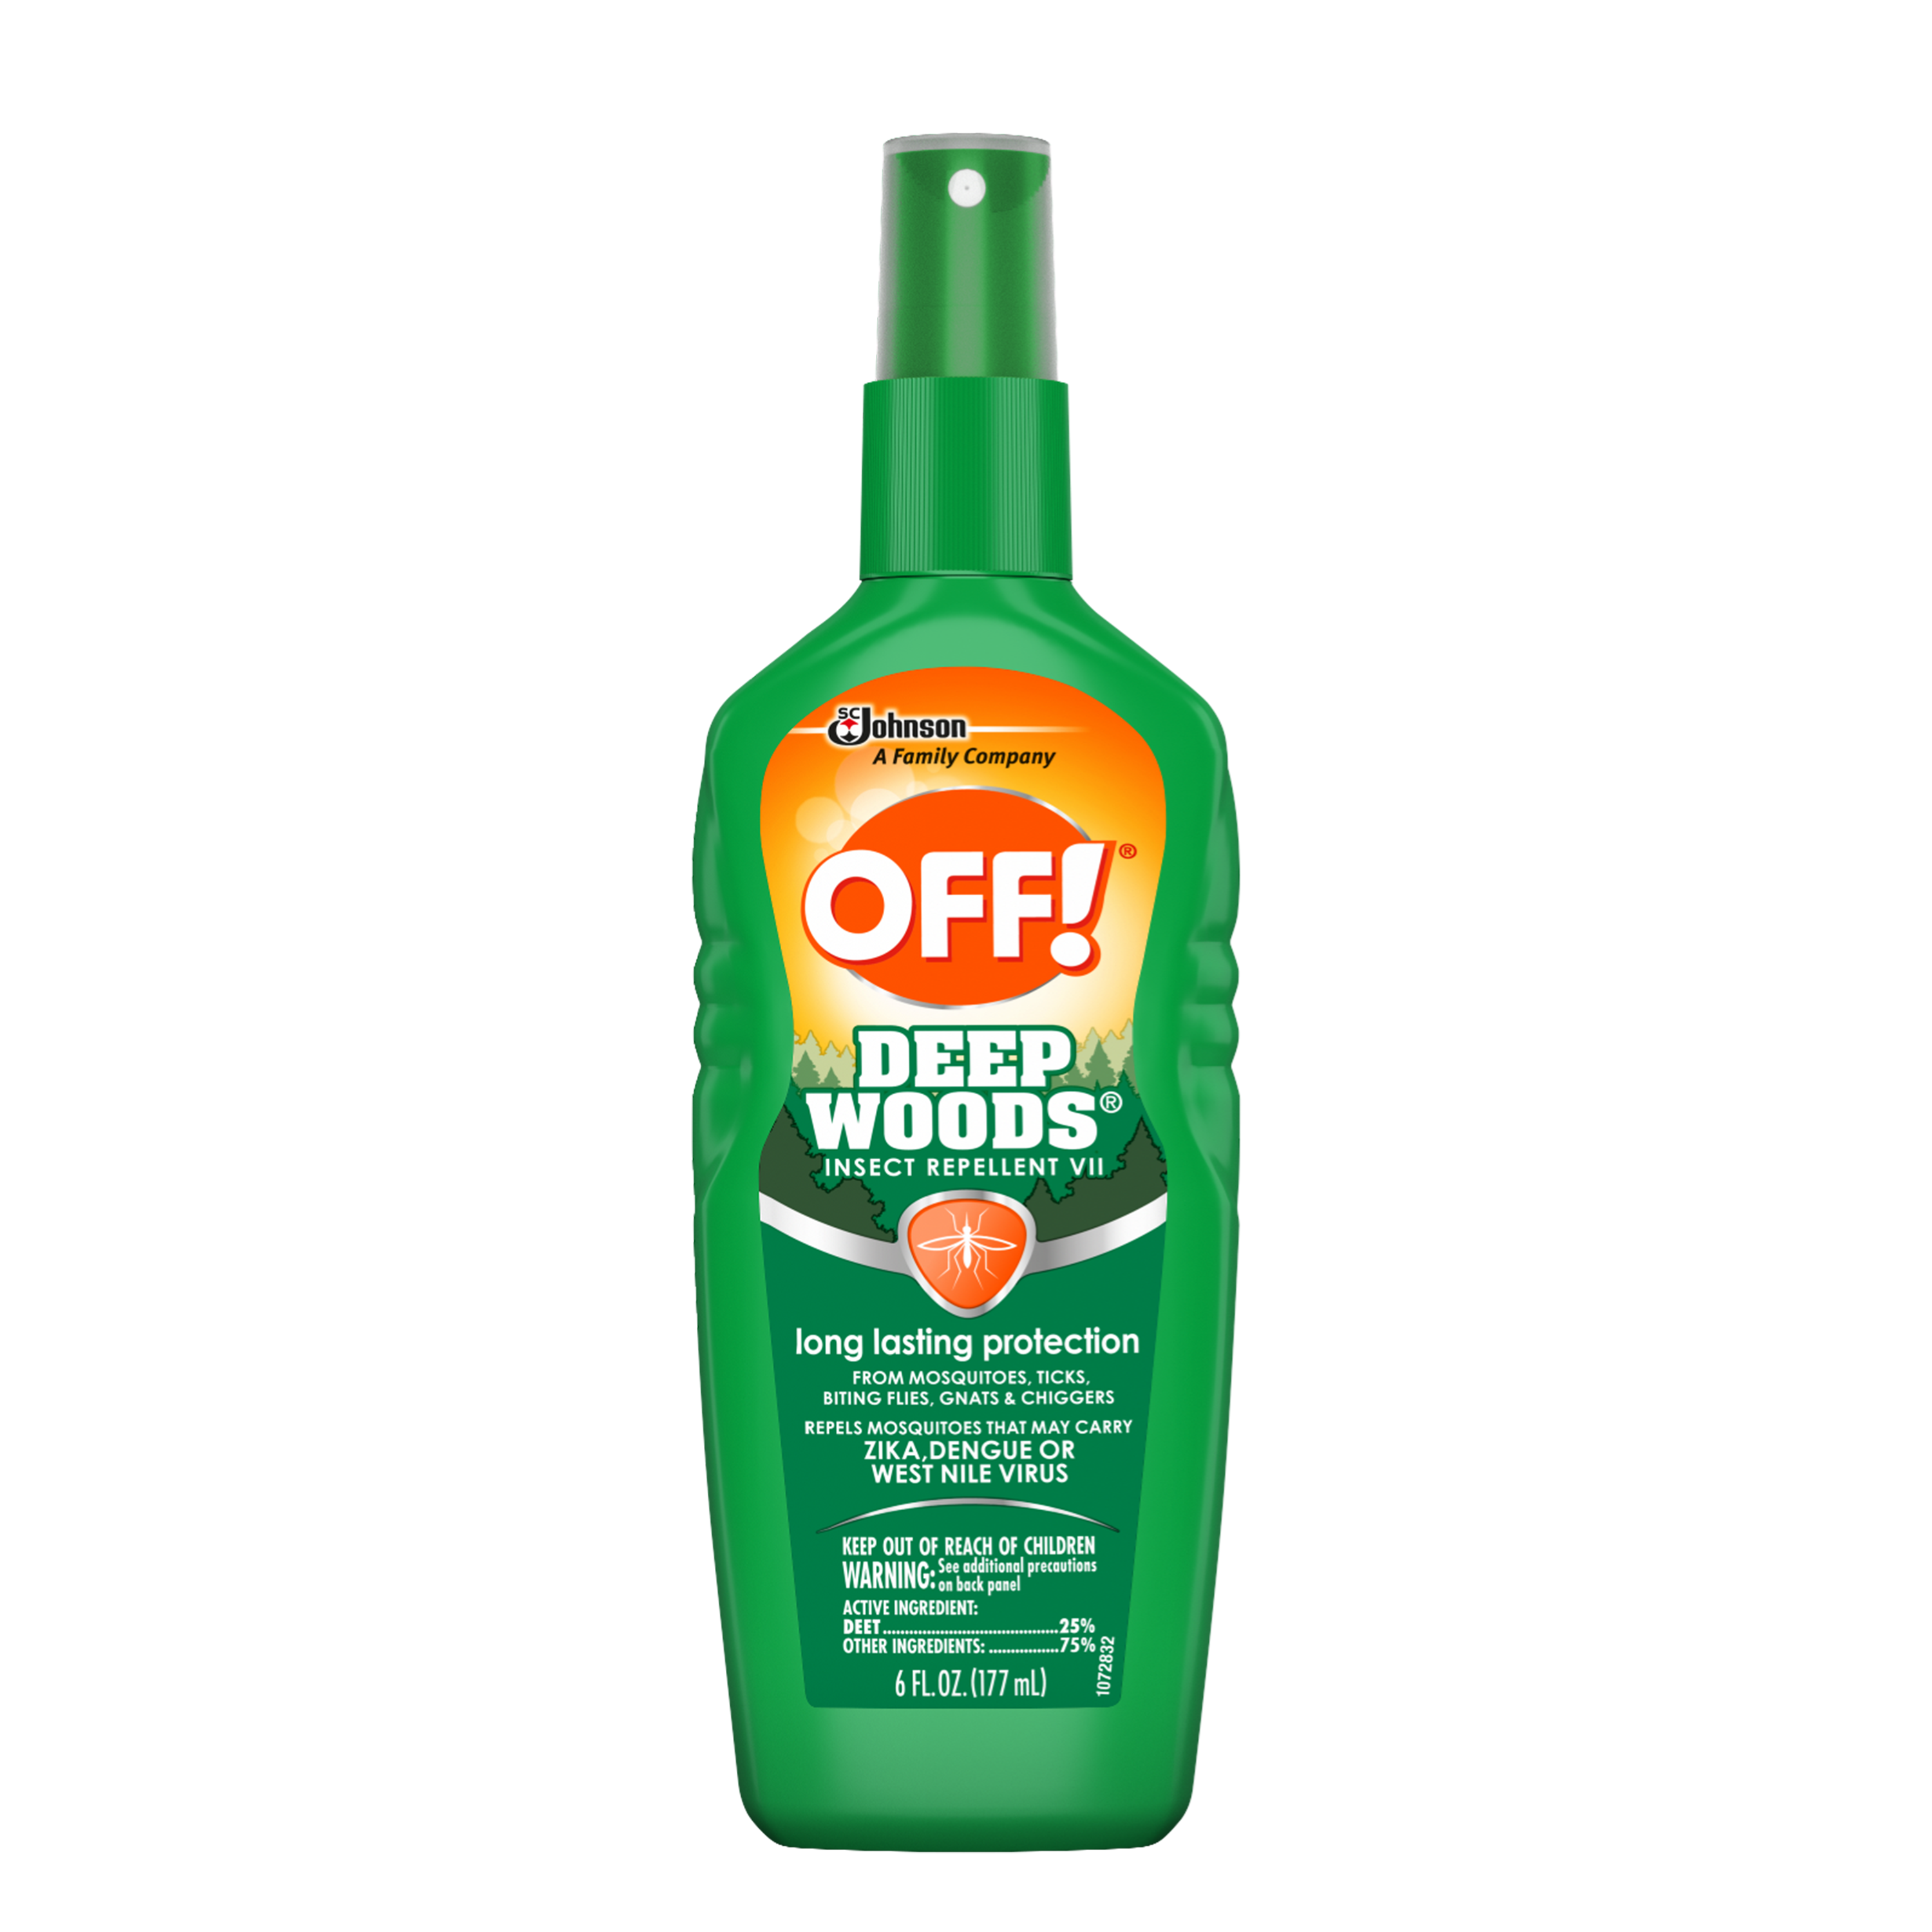 off-deep-woods-insect-repellent-vii-6oz-pump-65